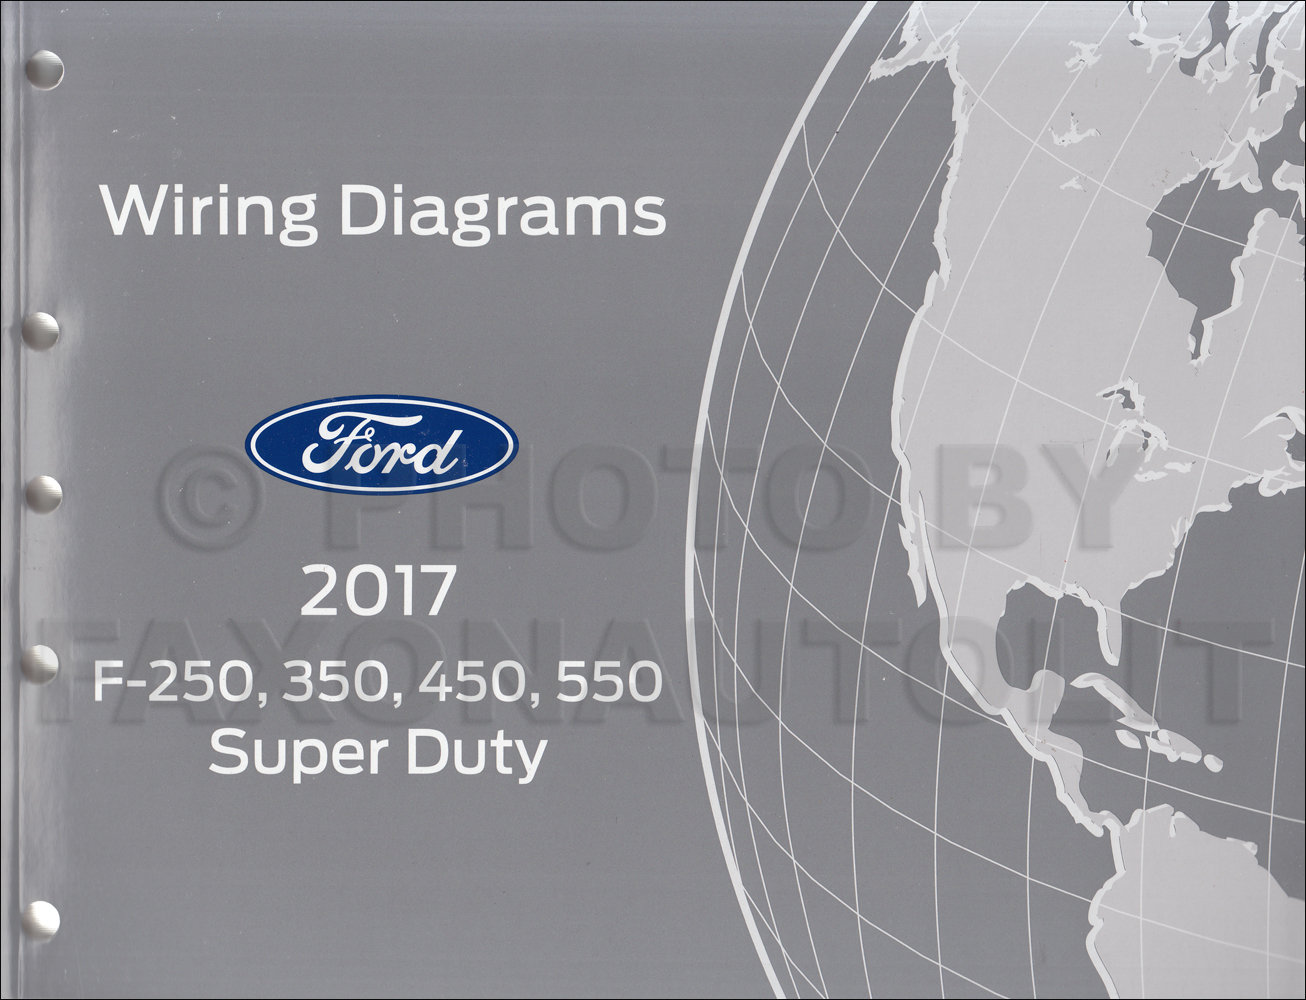 F550 Super Duty Wiring Diagram Strategy Design Plan 2000 Ford F250 Fuse 2017 Dutytruck Manual Original Rh Faxonautoliterature Com 2001